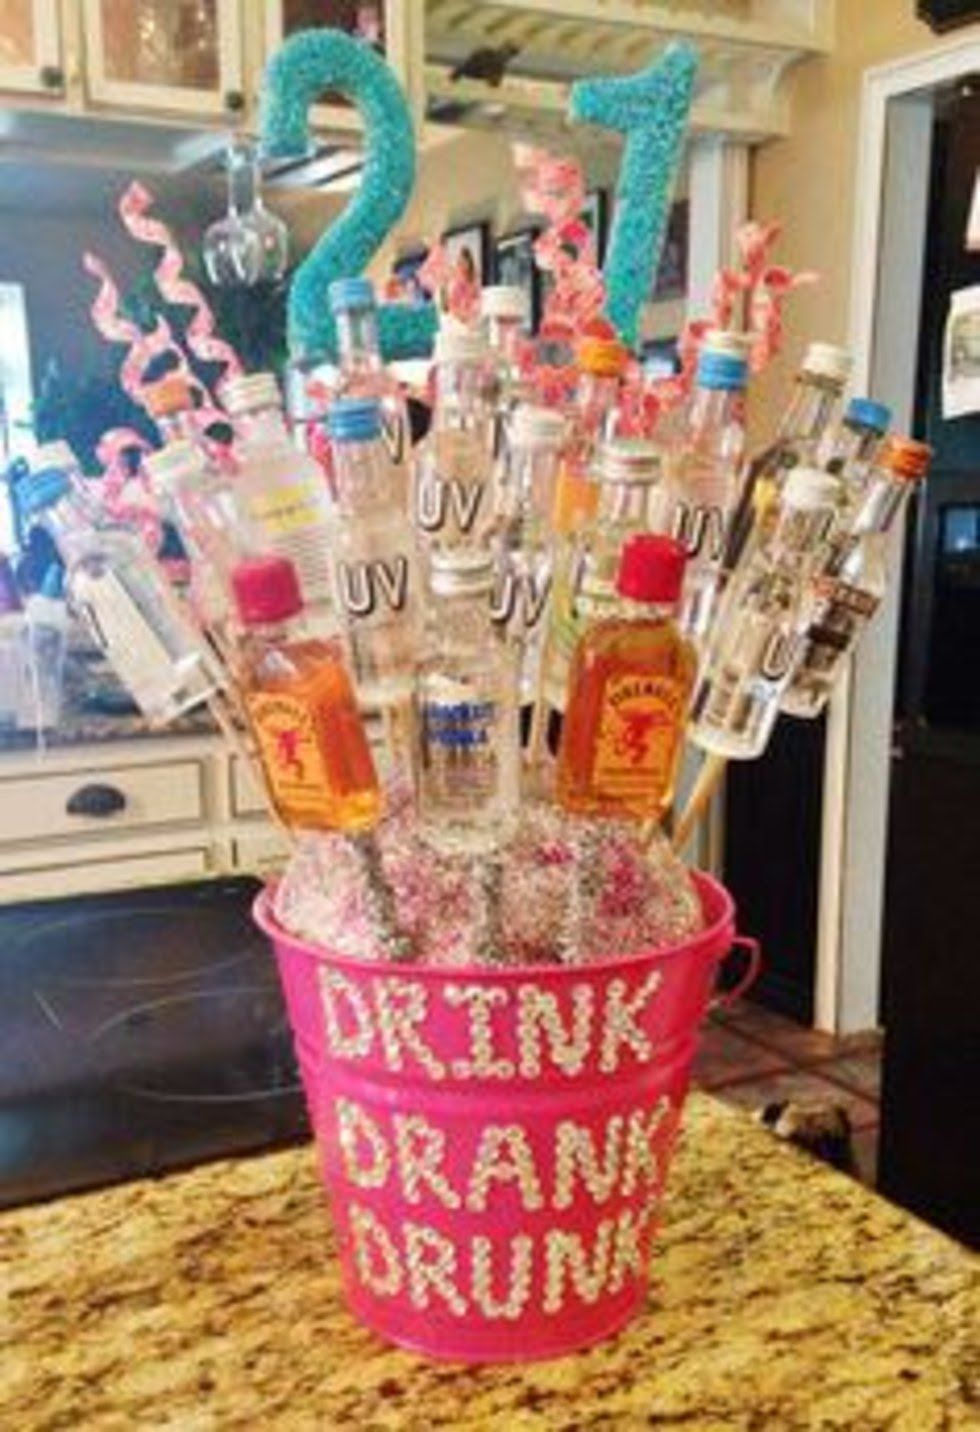 11 Things To Make Your Bestie For Her 21st Birthday